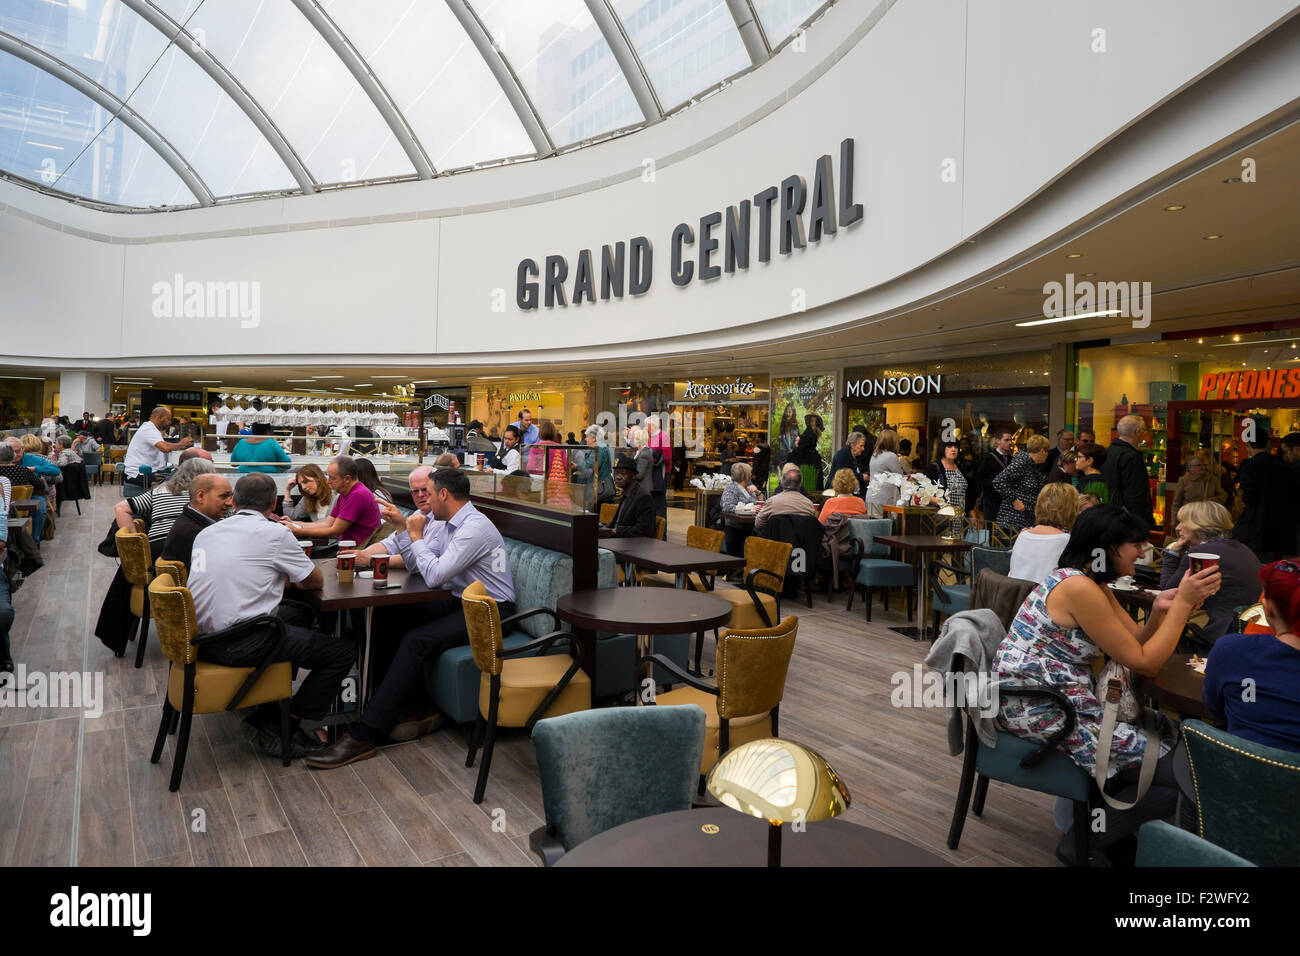 Central Station Food Court